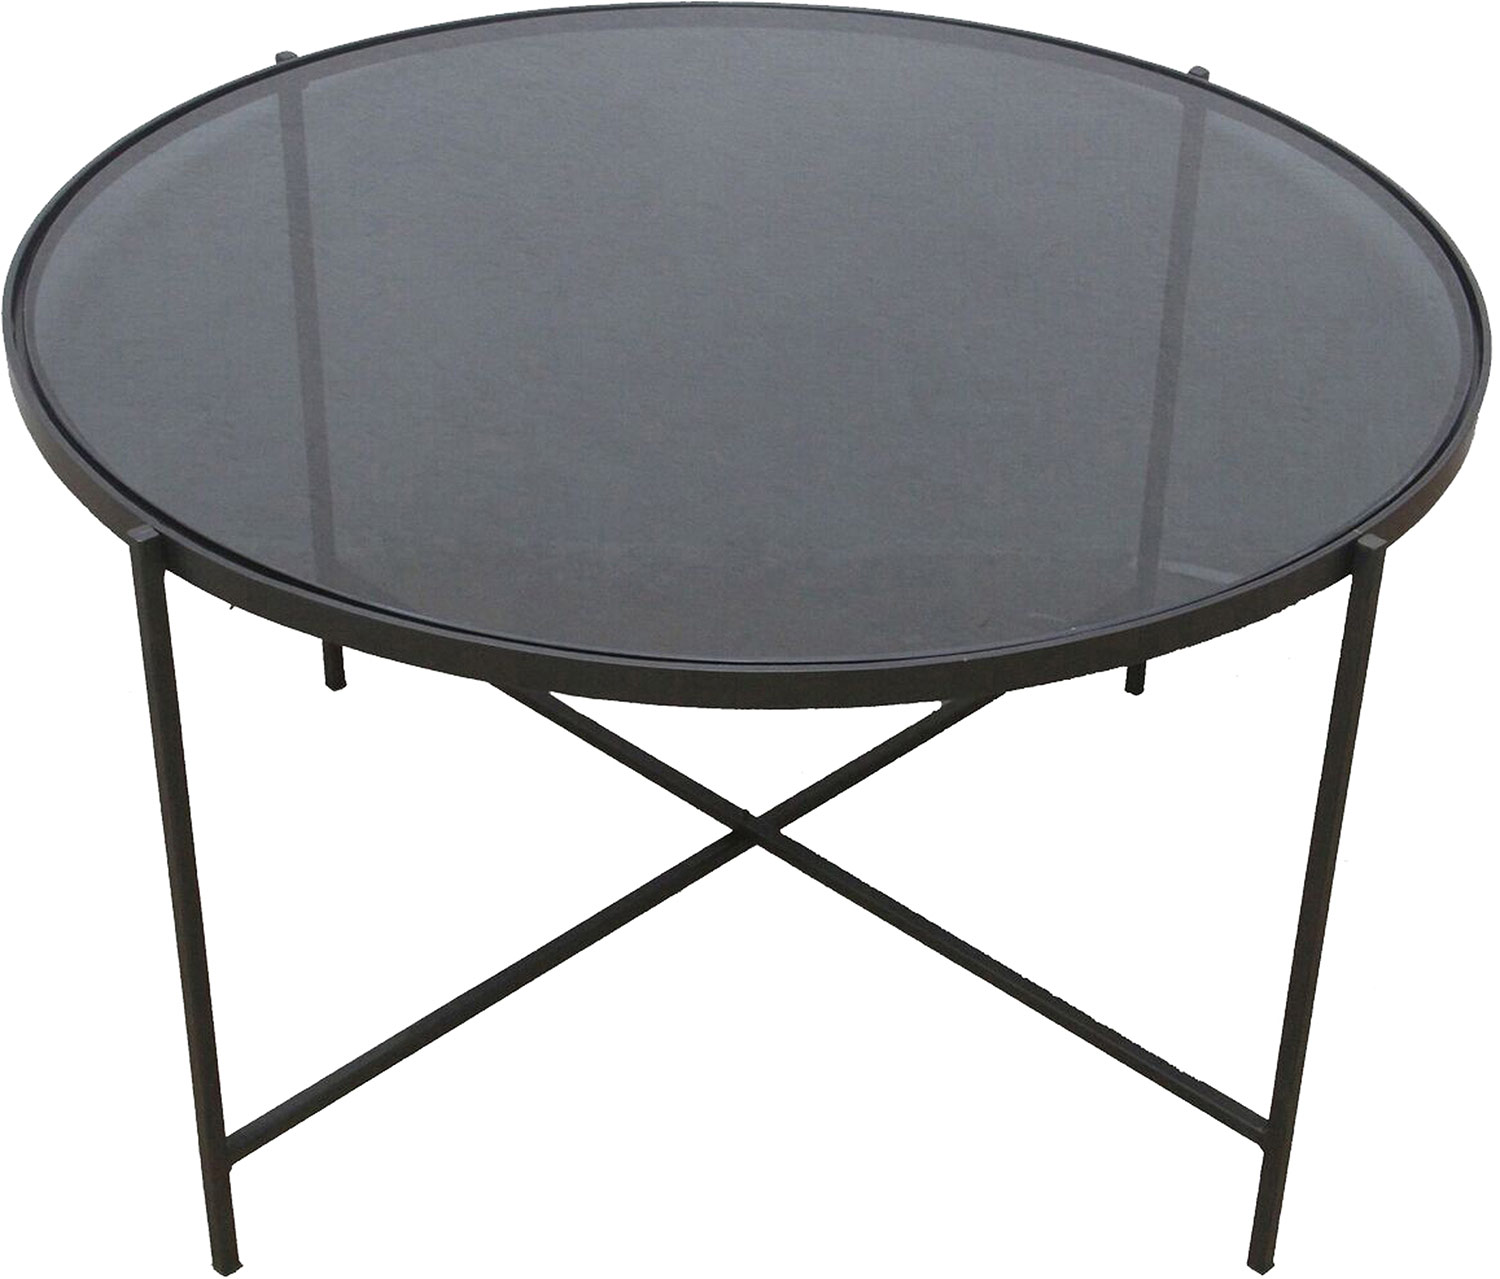 Ren-Wil Blaine Coffee Table - Black Powdercoat